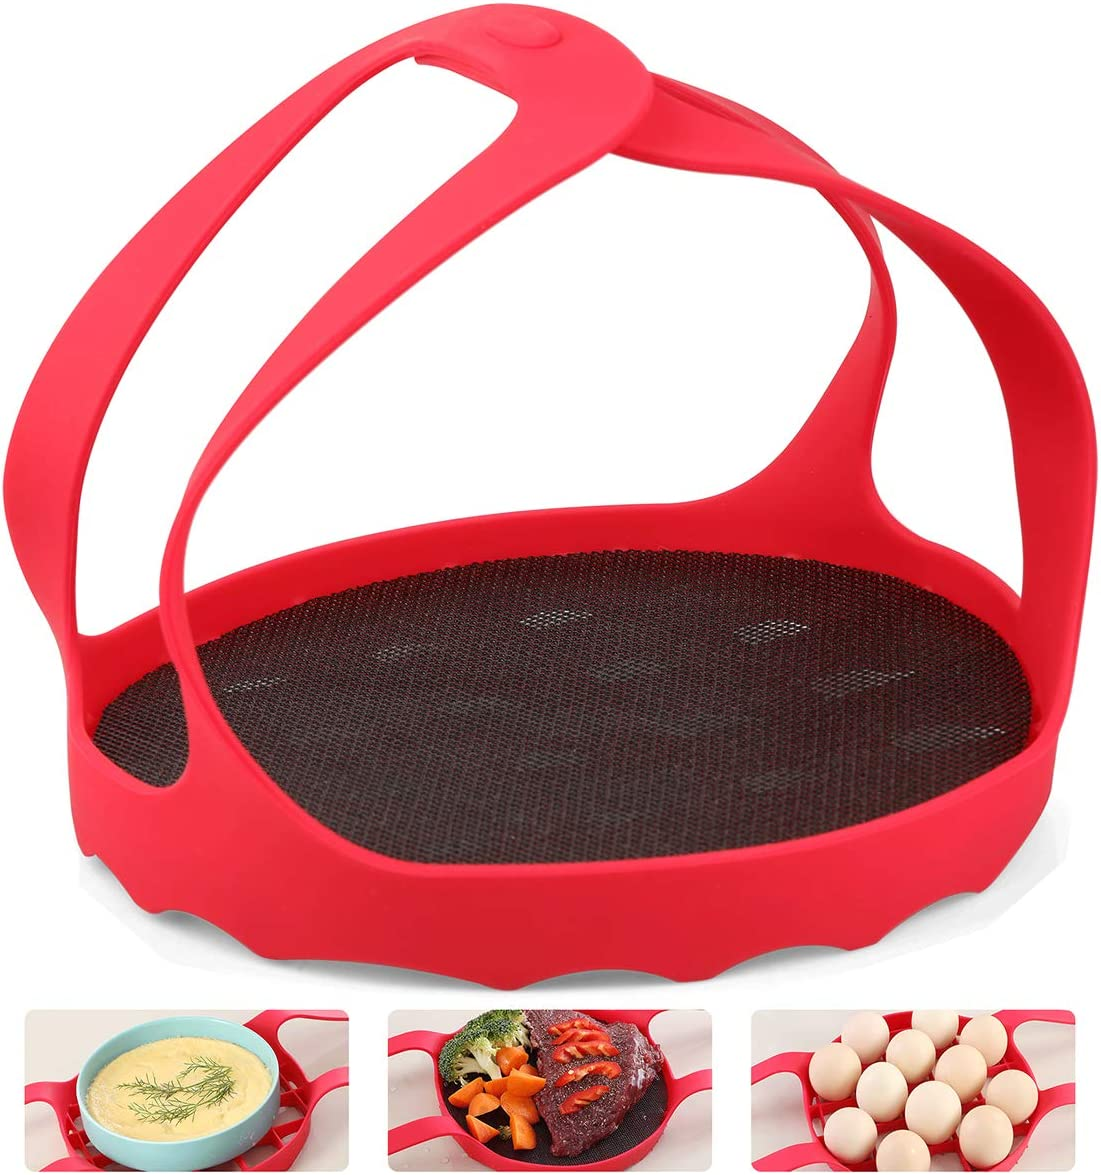 Silicone Pressure Cooking Sling Silicone Pressure Cooker Rack Sling Steamer 100% Food Grade Silicone Bakeware Sling Lifter Steamer Egg Rack for 6Qt / 8Qt Instant Pot and Other Pressure Cookers